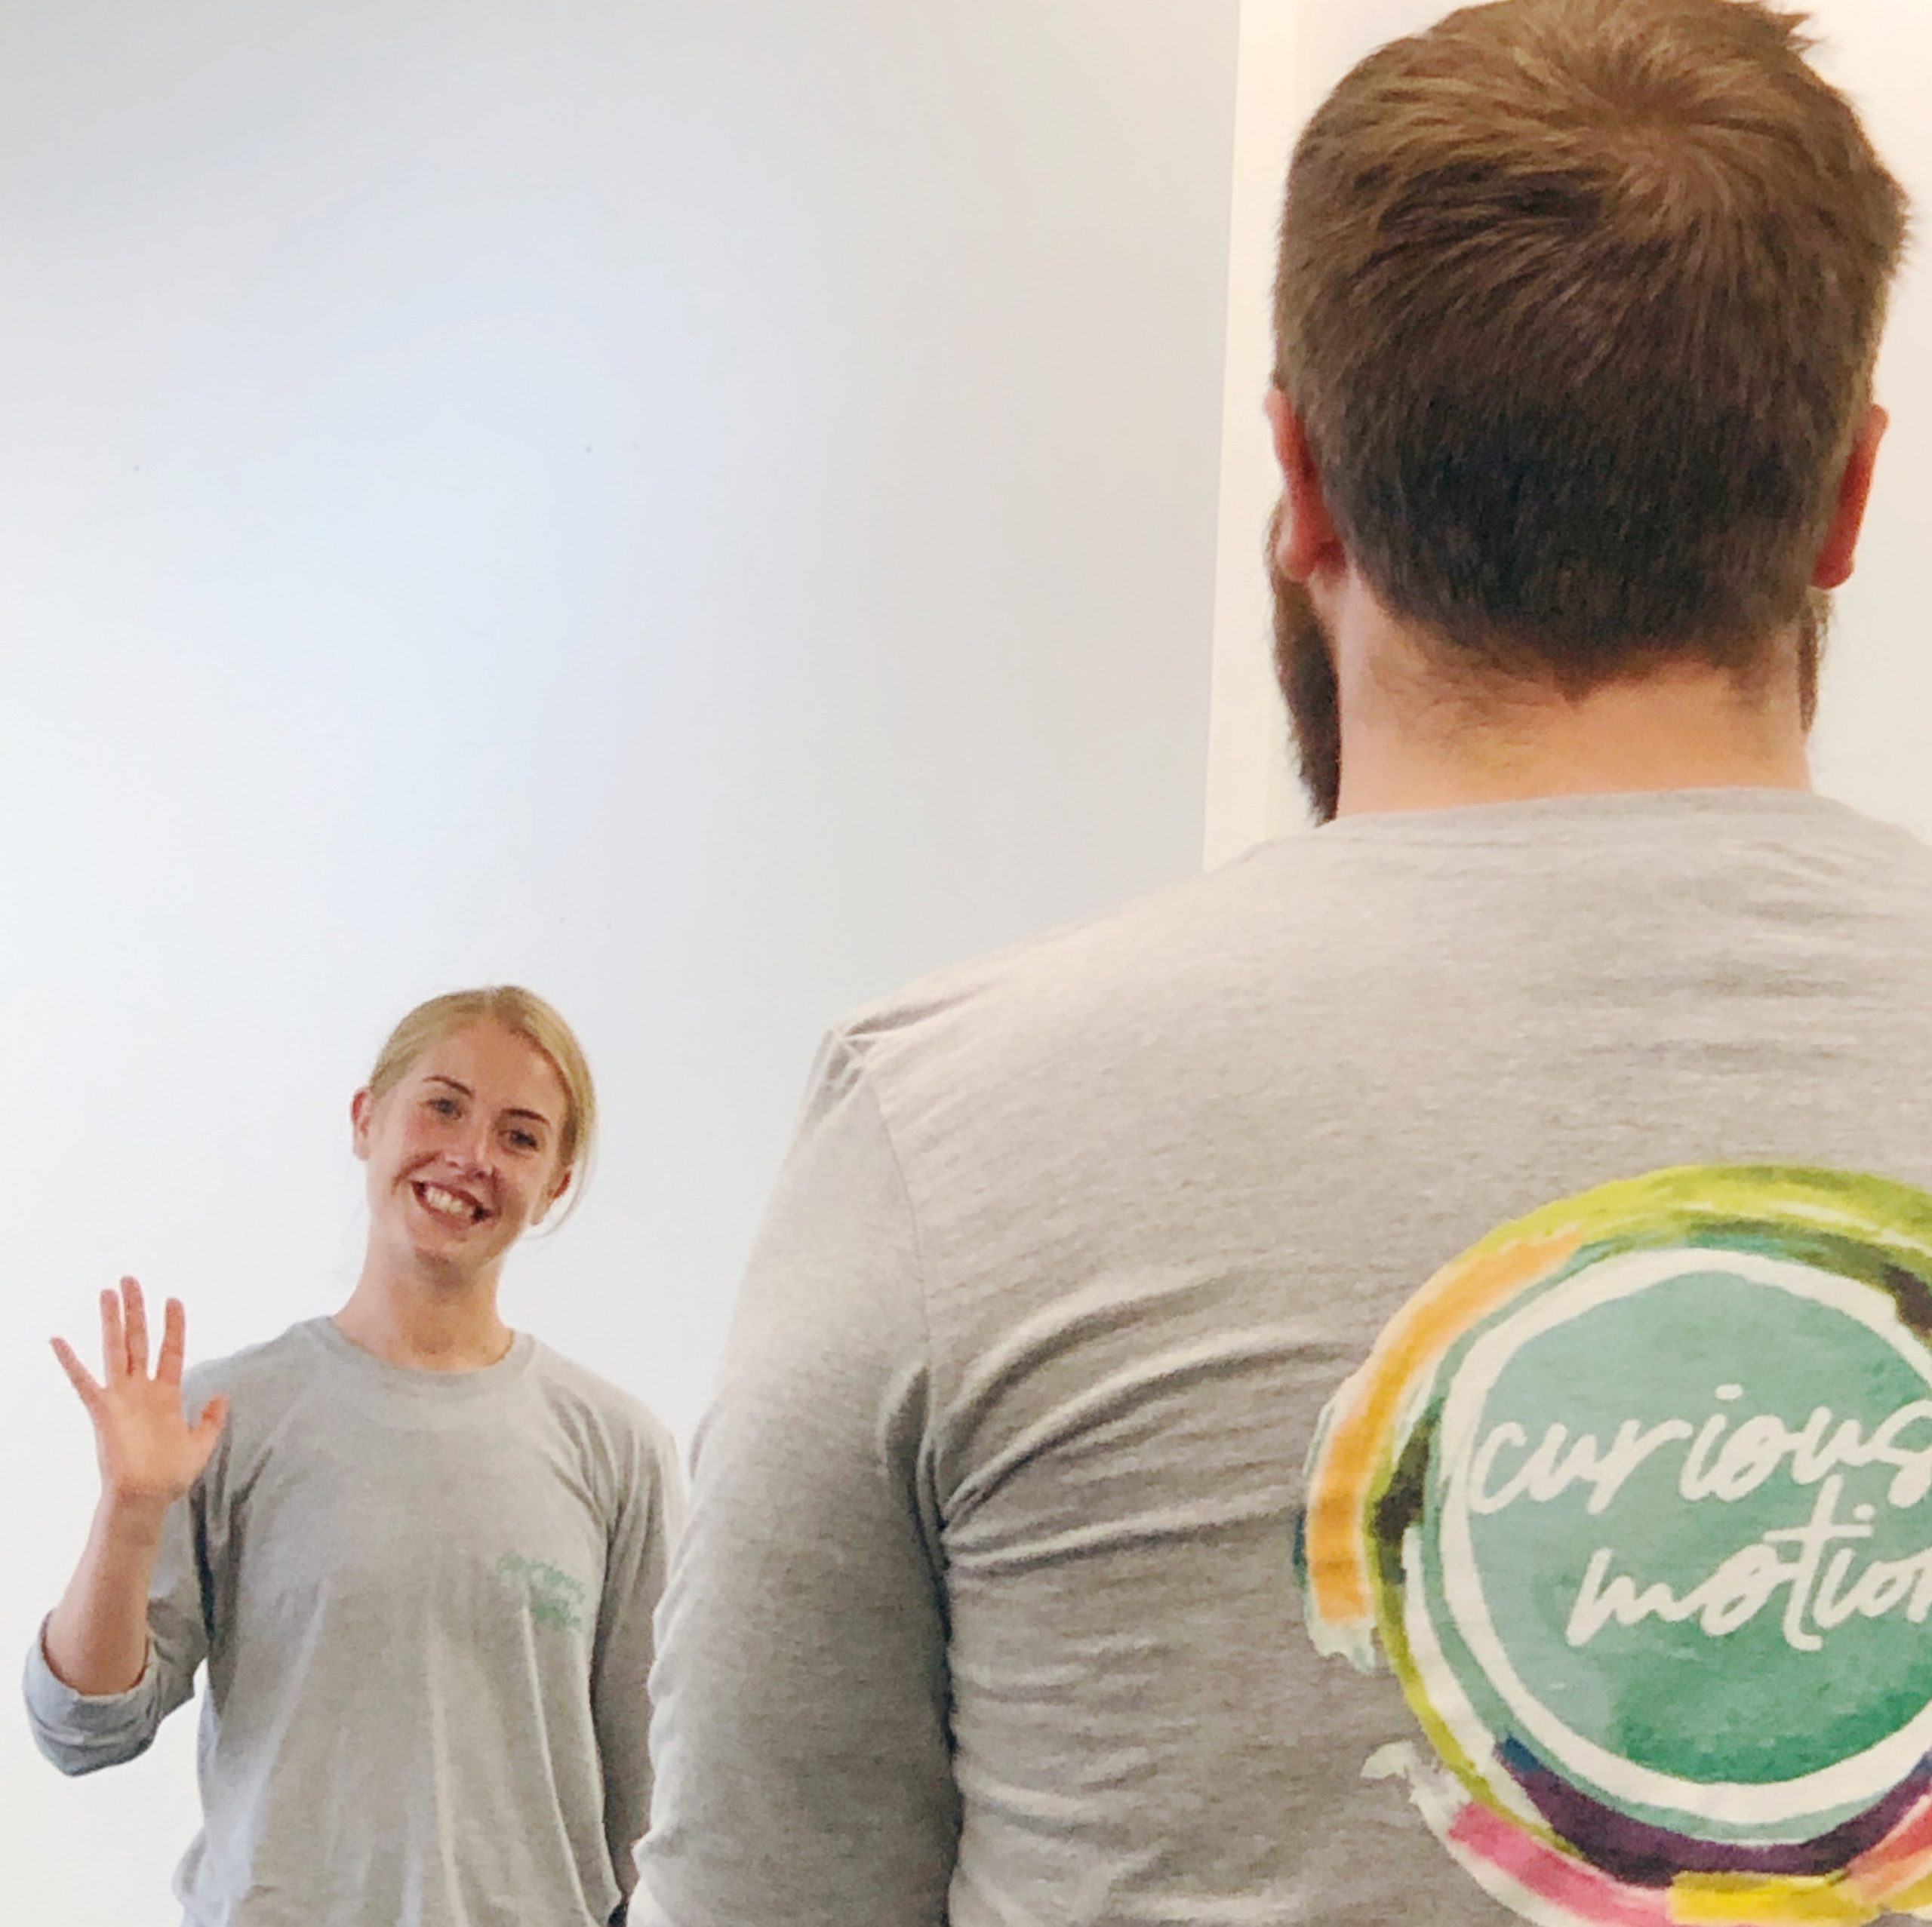 Two people - one person has their back to the camera and the Curious Motion logo can be seen on their t-shirt. In the background is another person facing the camera, waving and smiling.